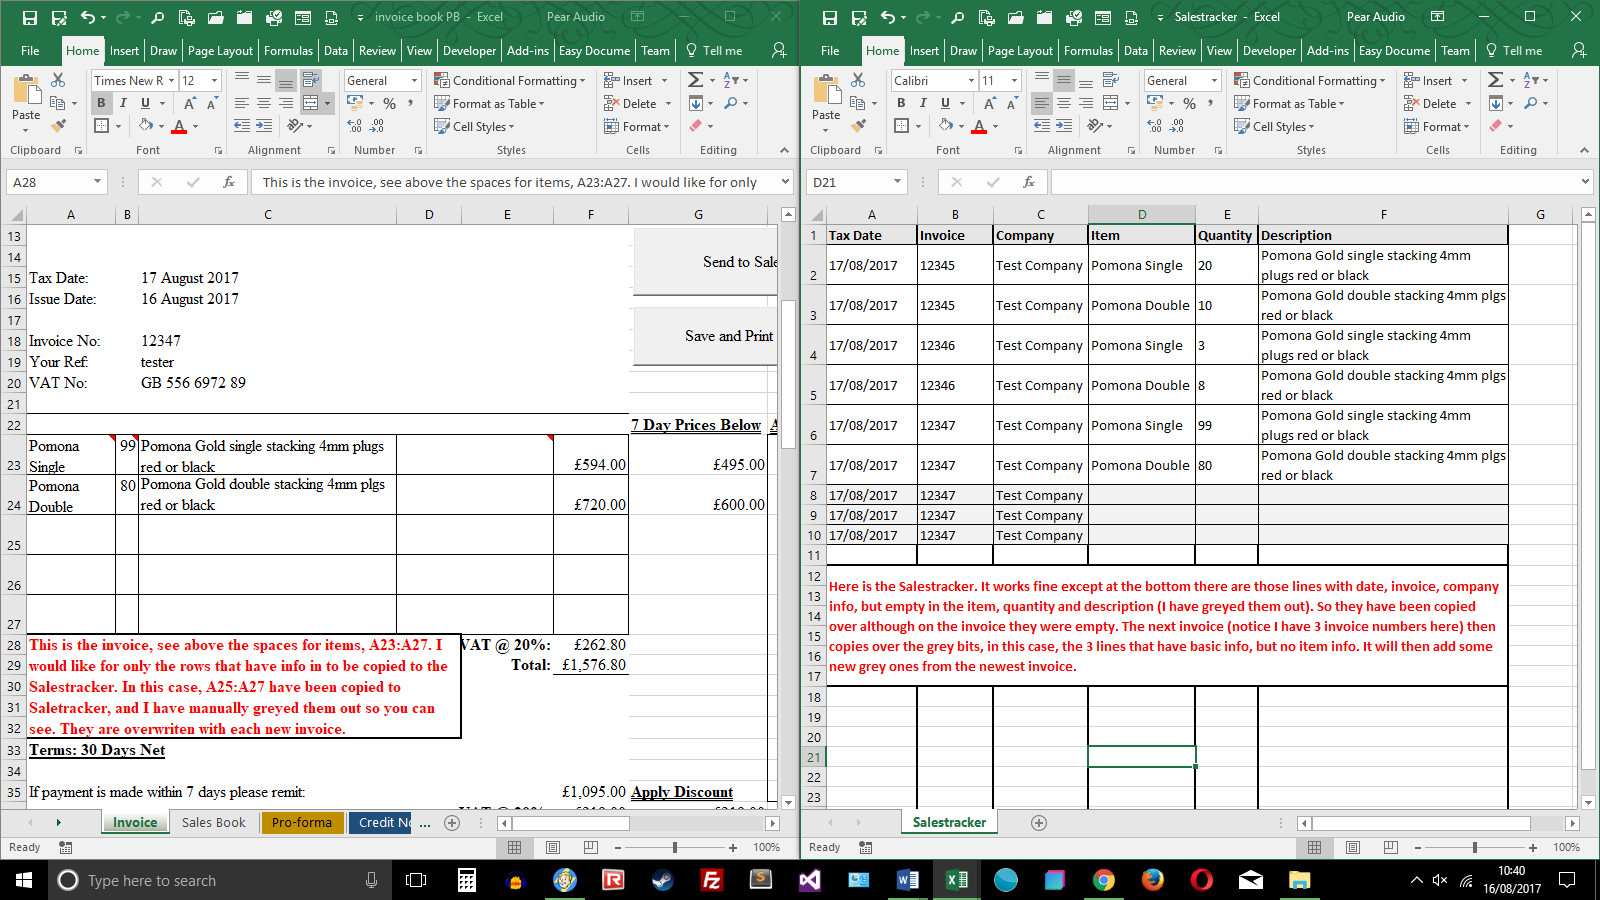 Excel Vba Modify Code So Data Transferred From Invoice